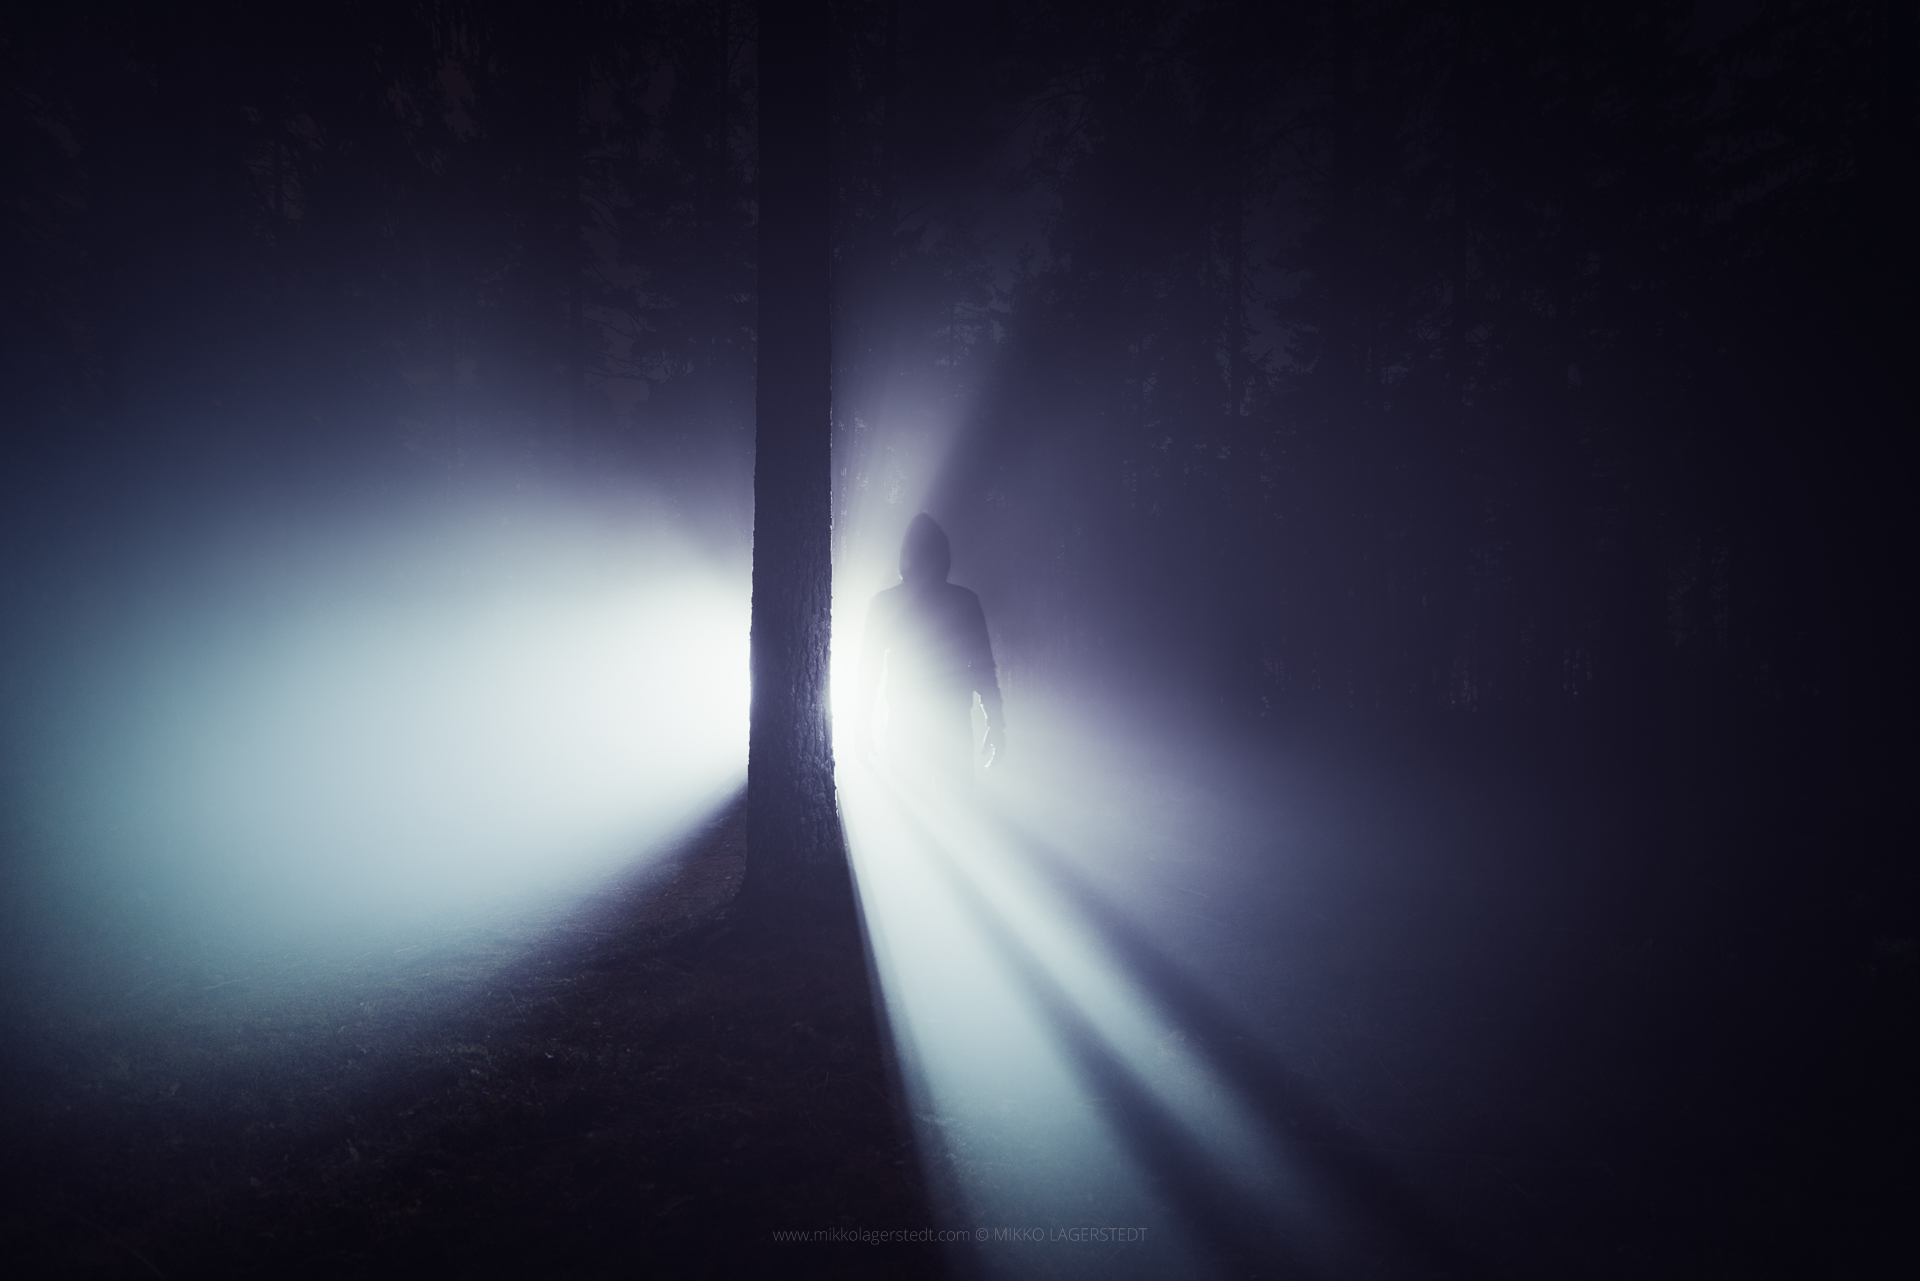 Mikko Lagerstedt - Lost in the Mist,   2014